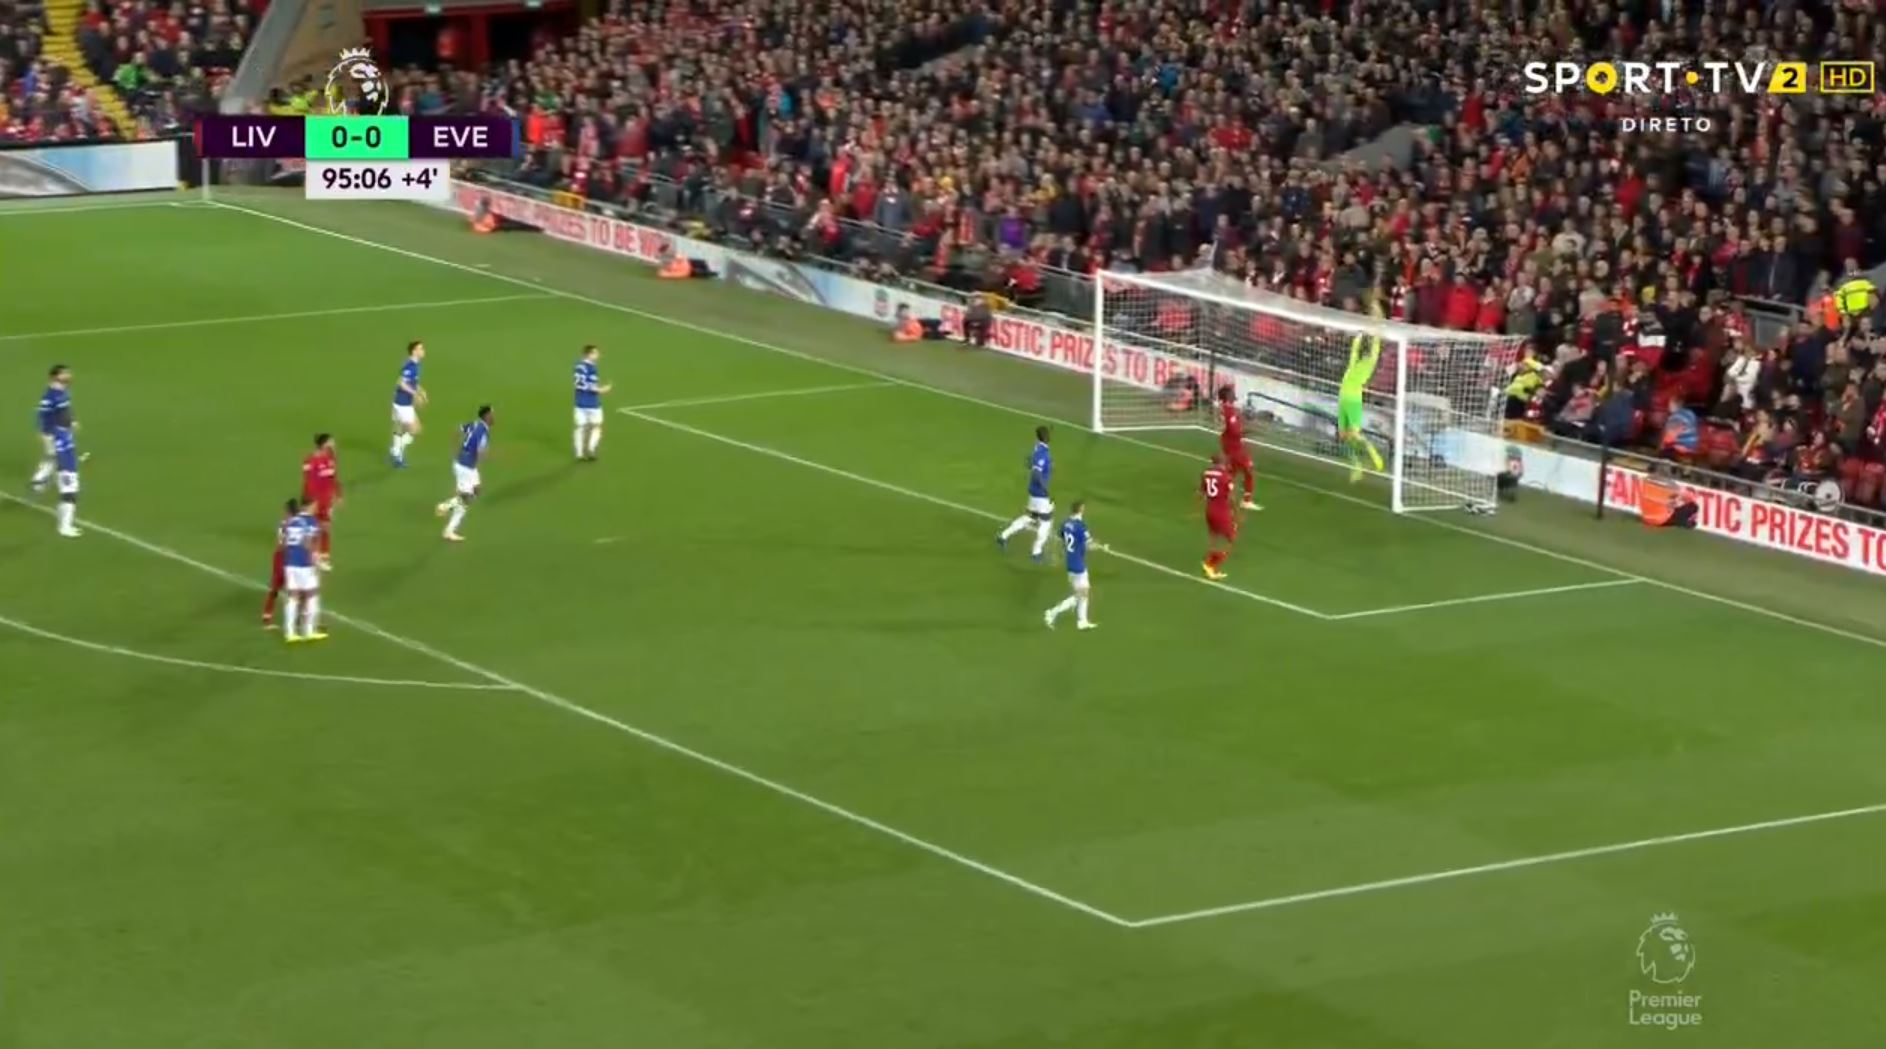 WATCH: Pickford With A Ridiculous 95′ Blunder To Give Liverpool The Win